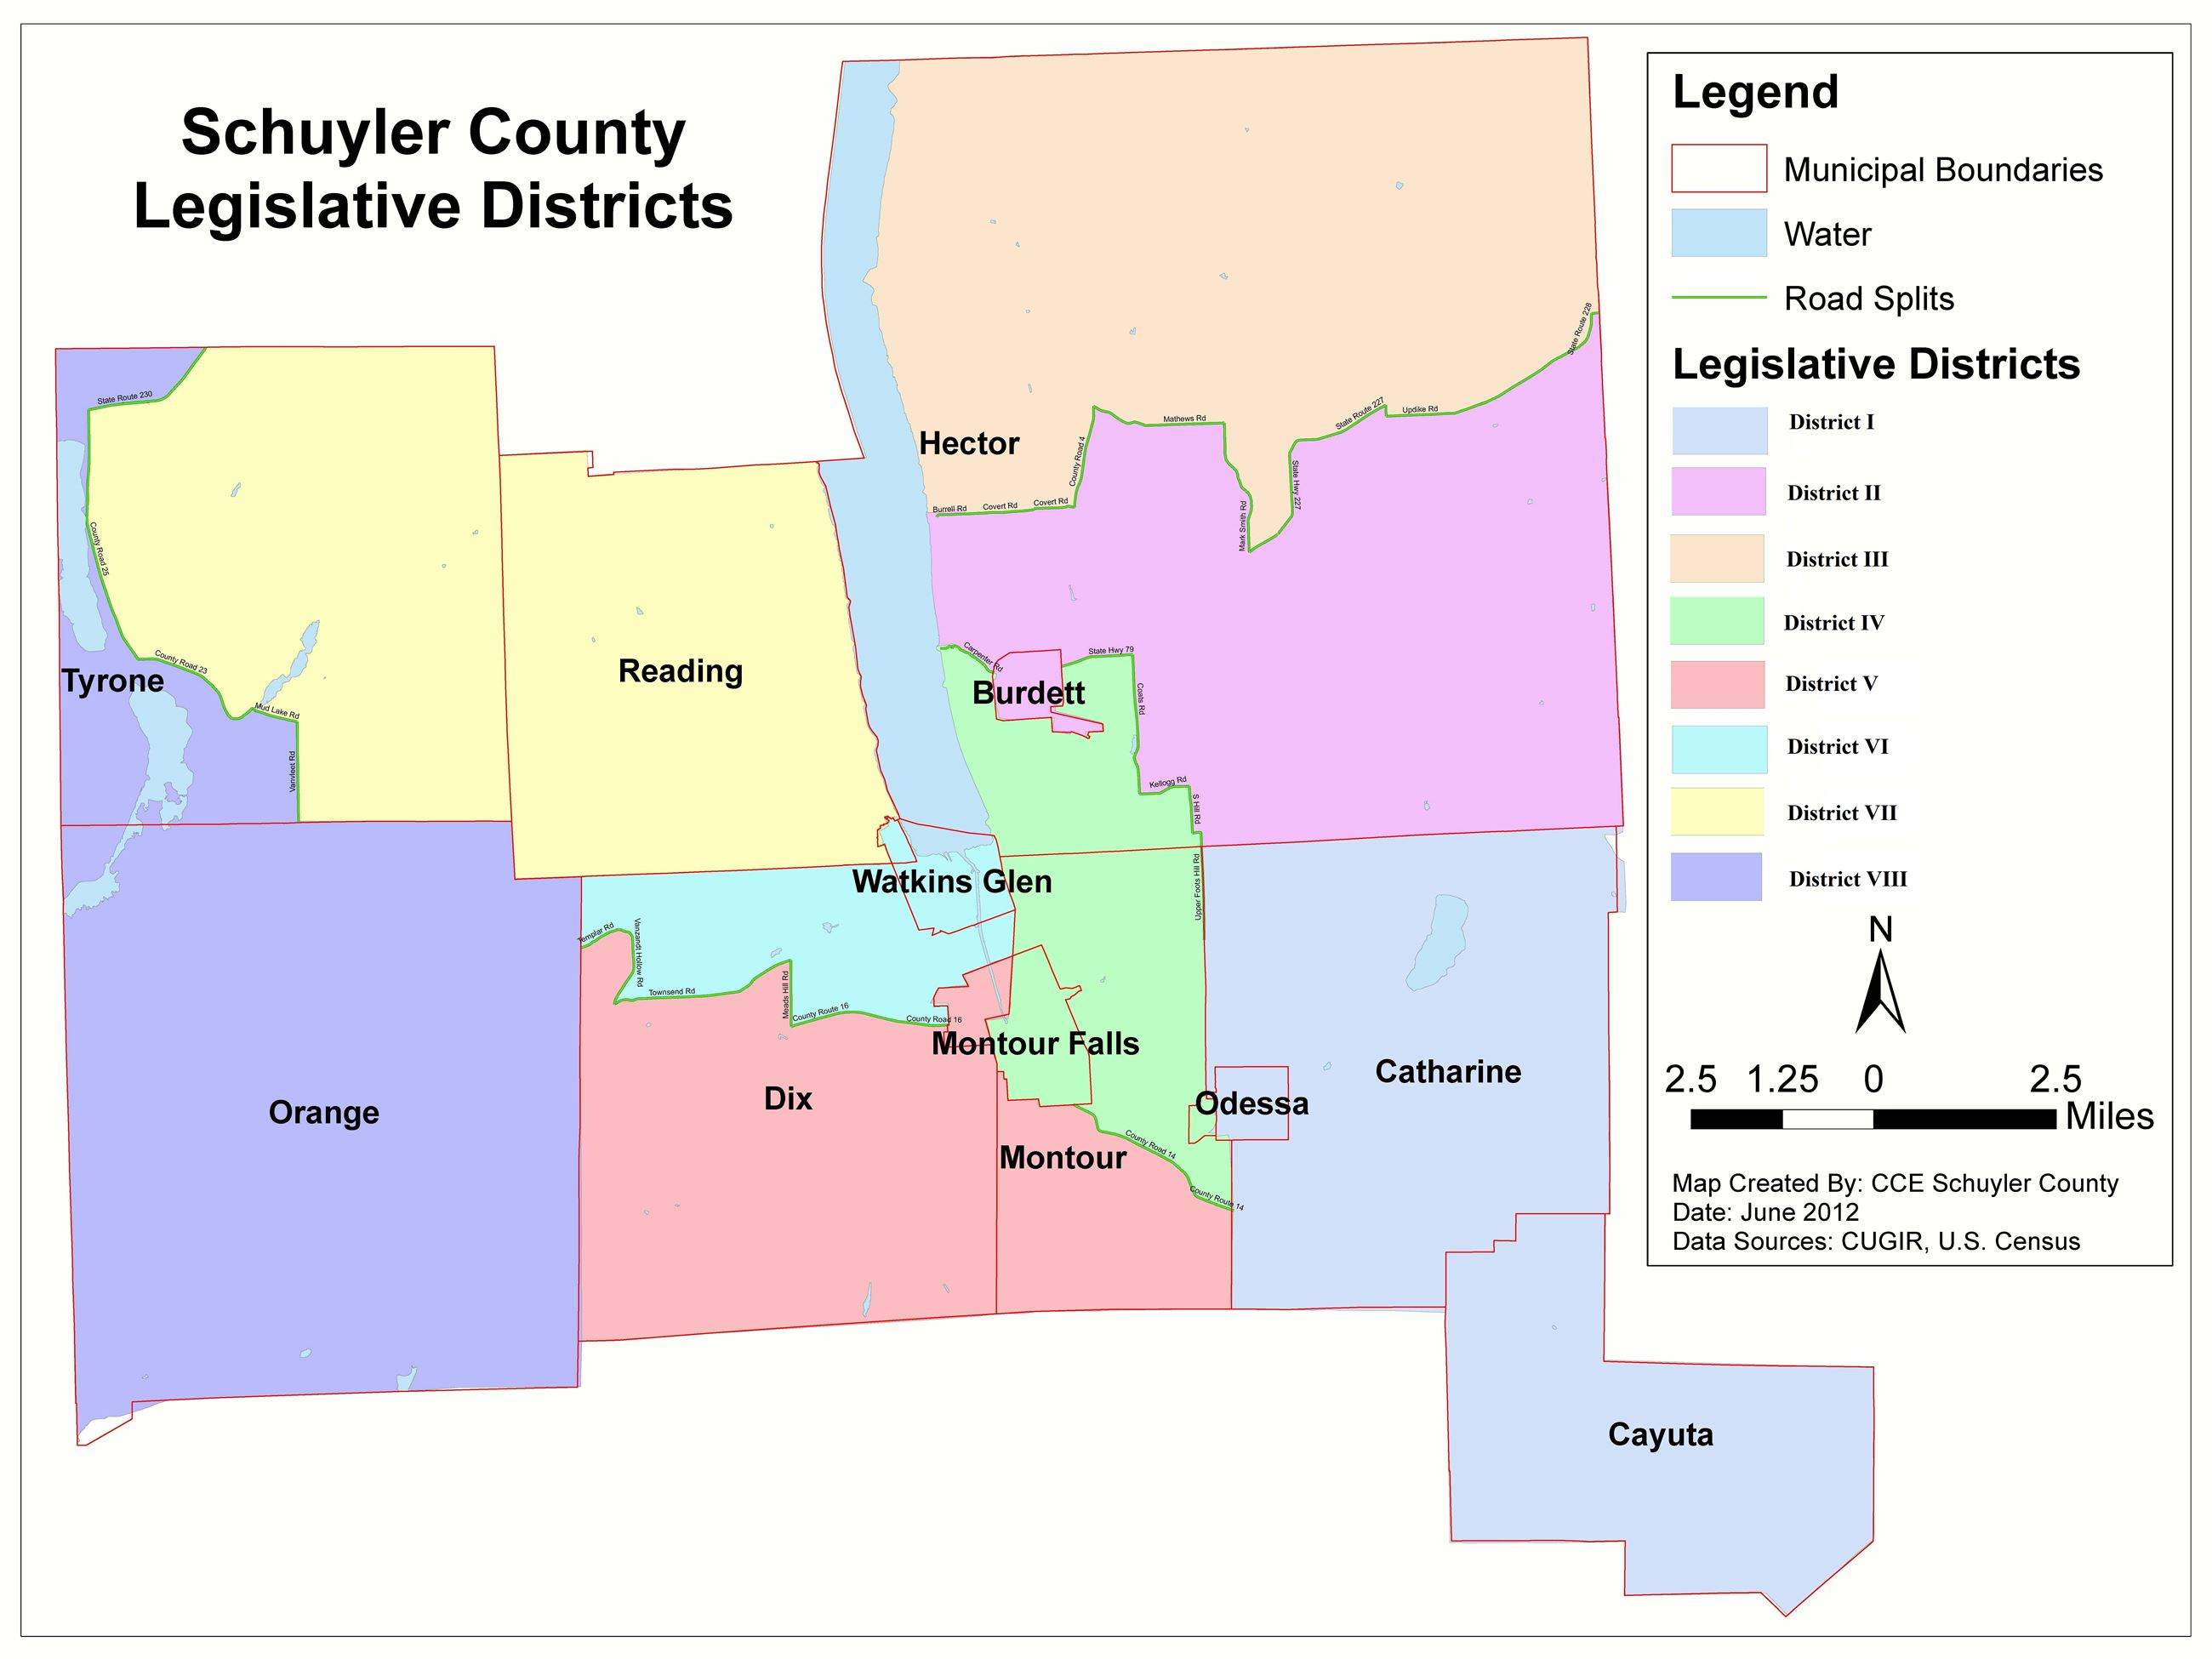 County Maps | Schuyler County, NY - Official Website on northumberland county tax map, ulster county tax map, mckean county tax map, kent county tax map, suffolk county tax map, broome county tax map, chemung ny, nassau county tax map, franklin county tax map, greene county tax map, marshall county tax map, potter county tax map, cortland county tax map, crawford county tax map, chenango county tax map, clarion county tax map, milam county tax map, richmond county tax map, caldwell county tax map, steuben county tax map,